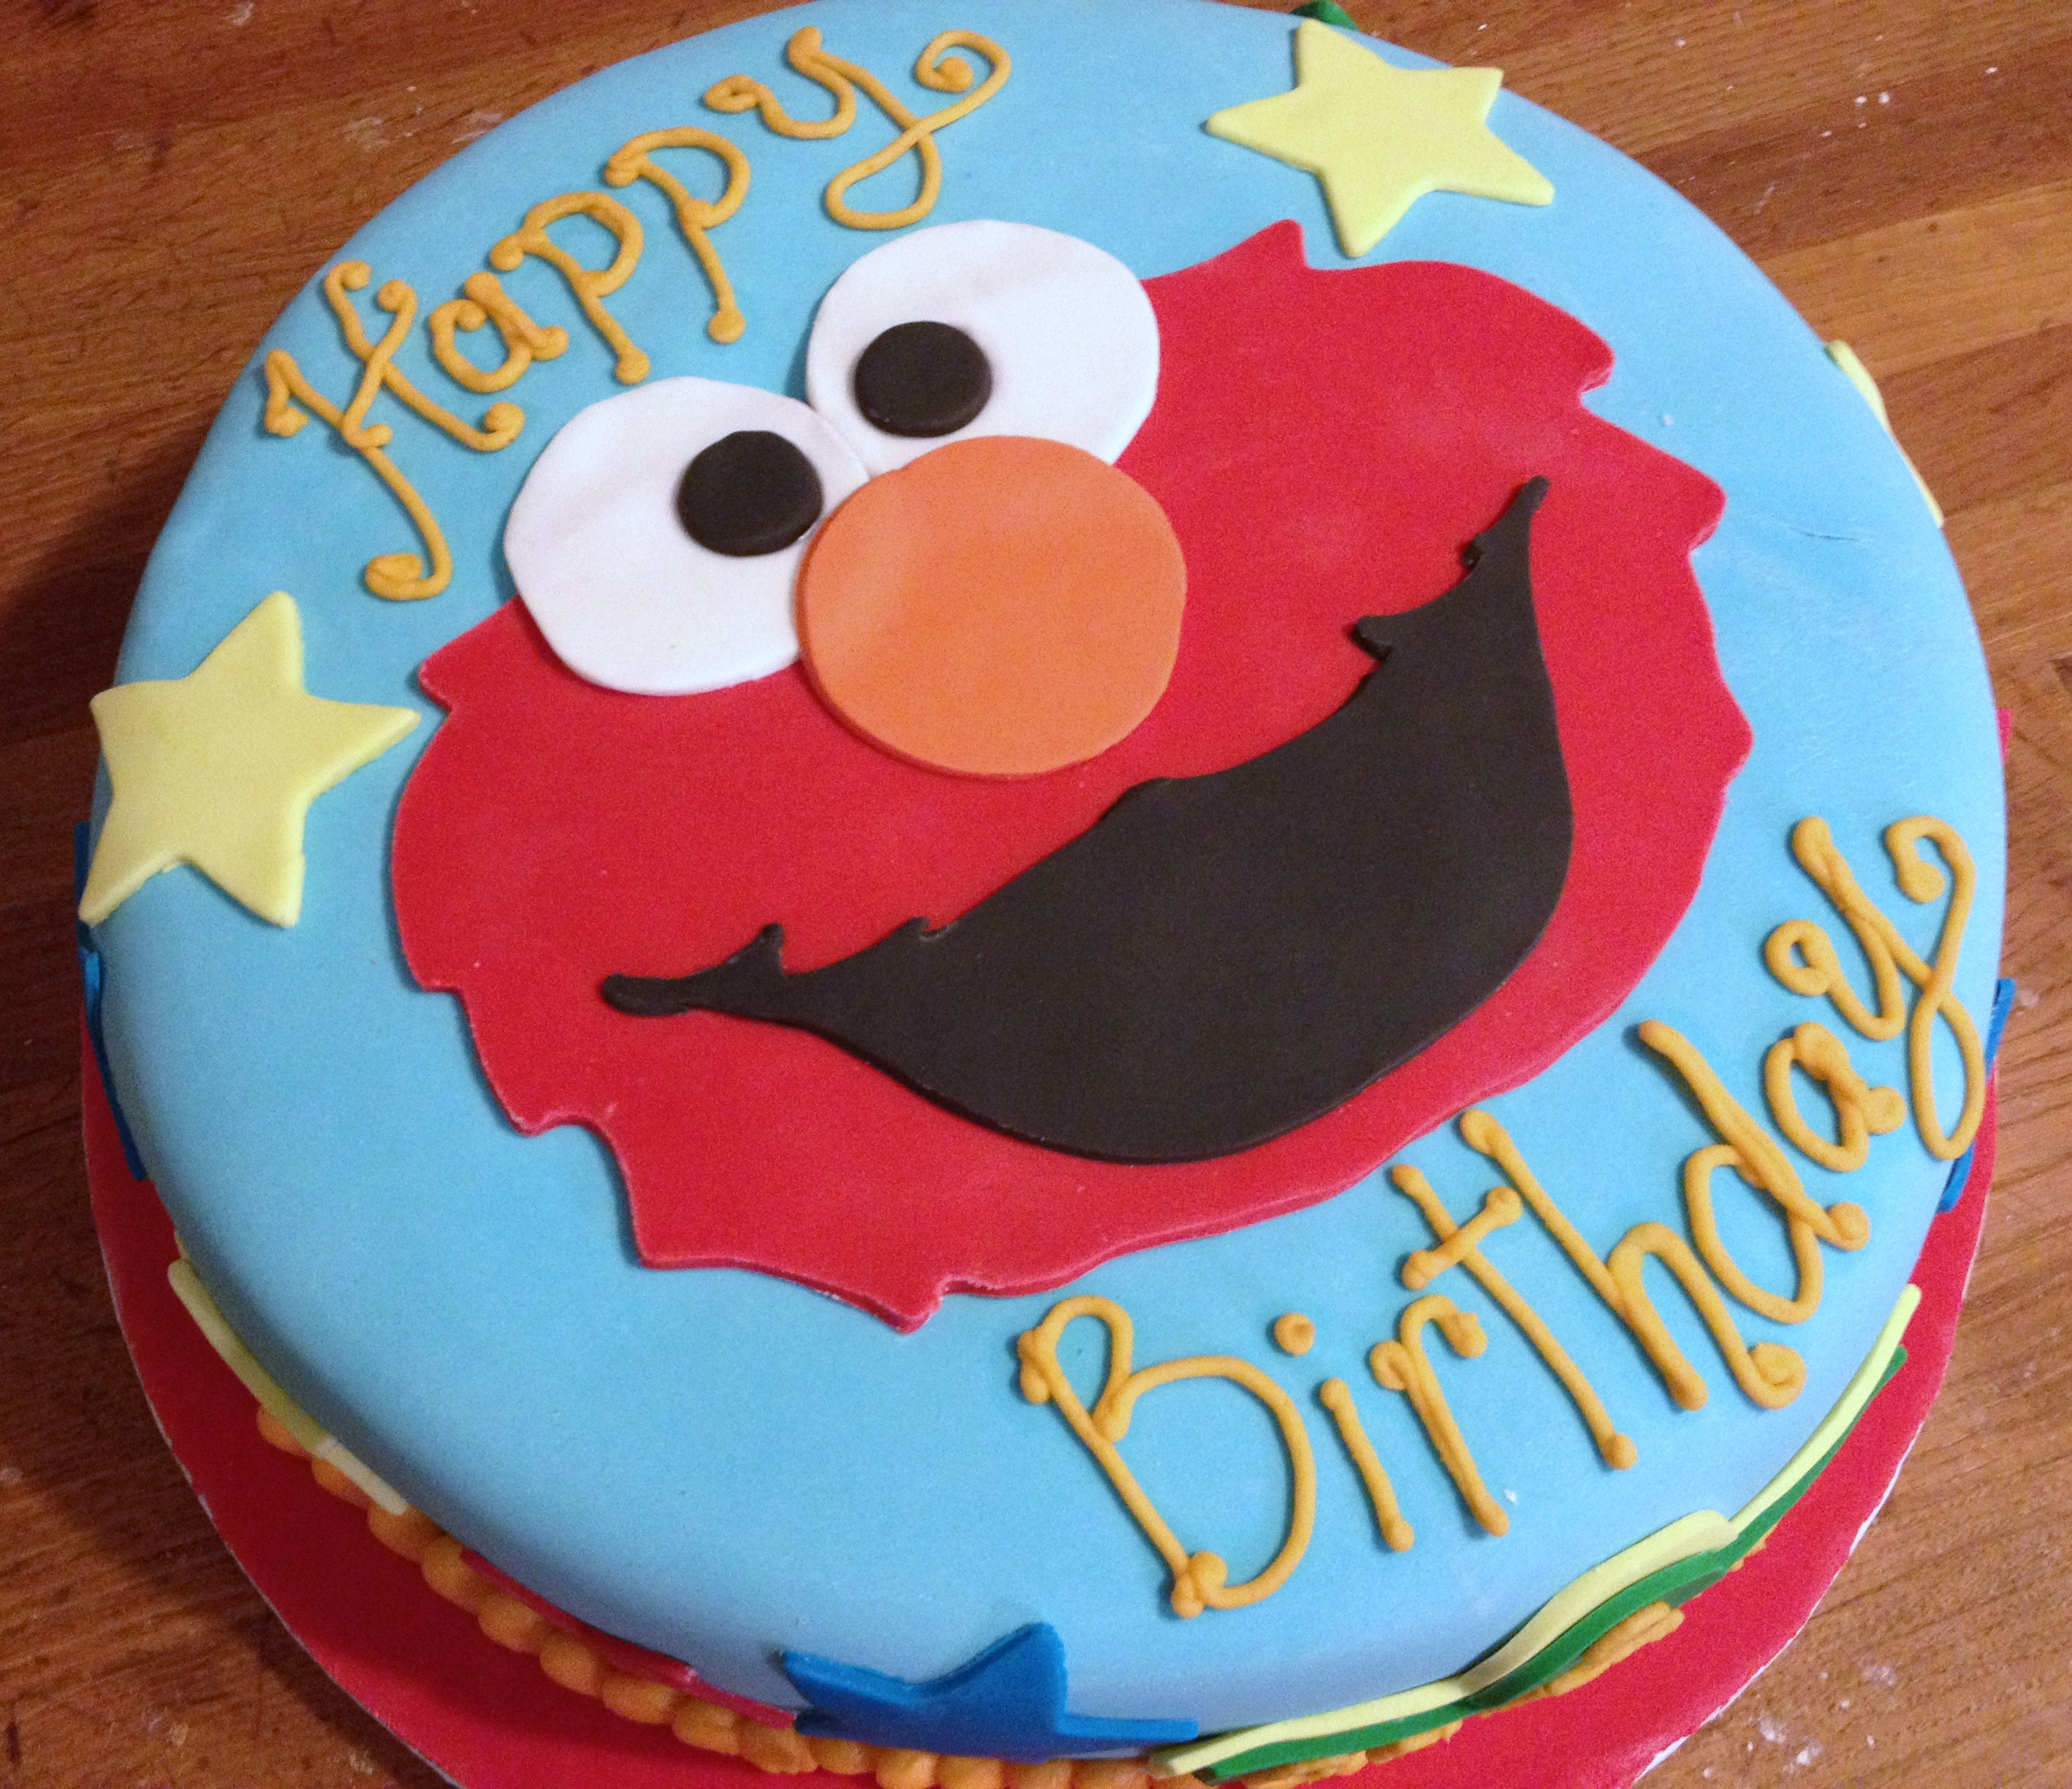 Elmo Birthday Cake Nyc Image Inspiration of Cake and Birthday